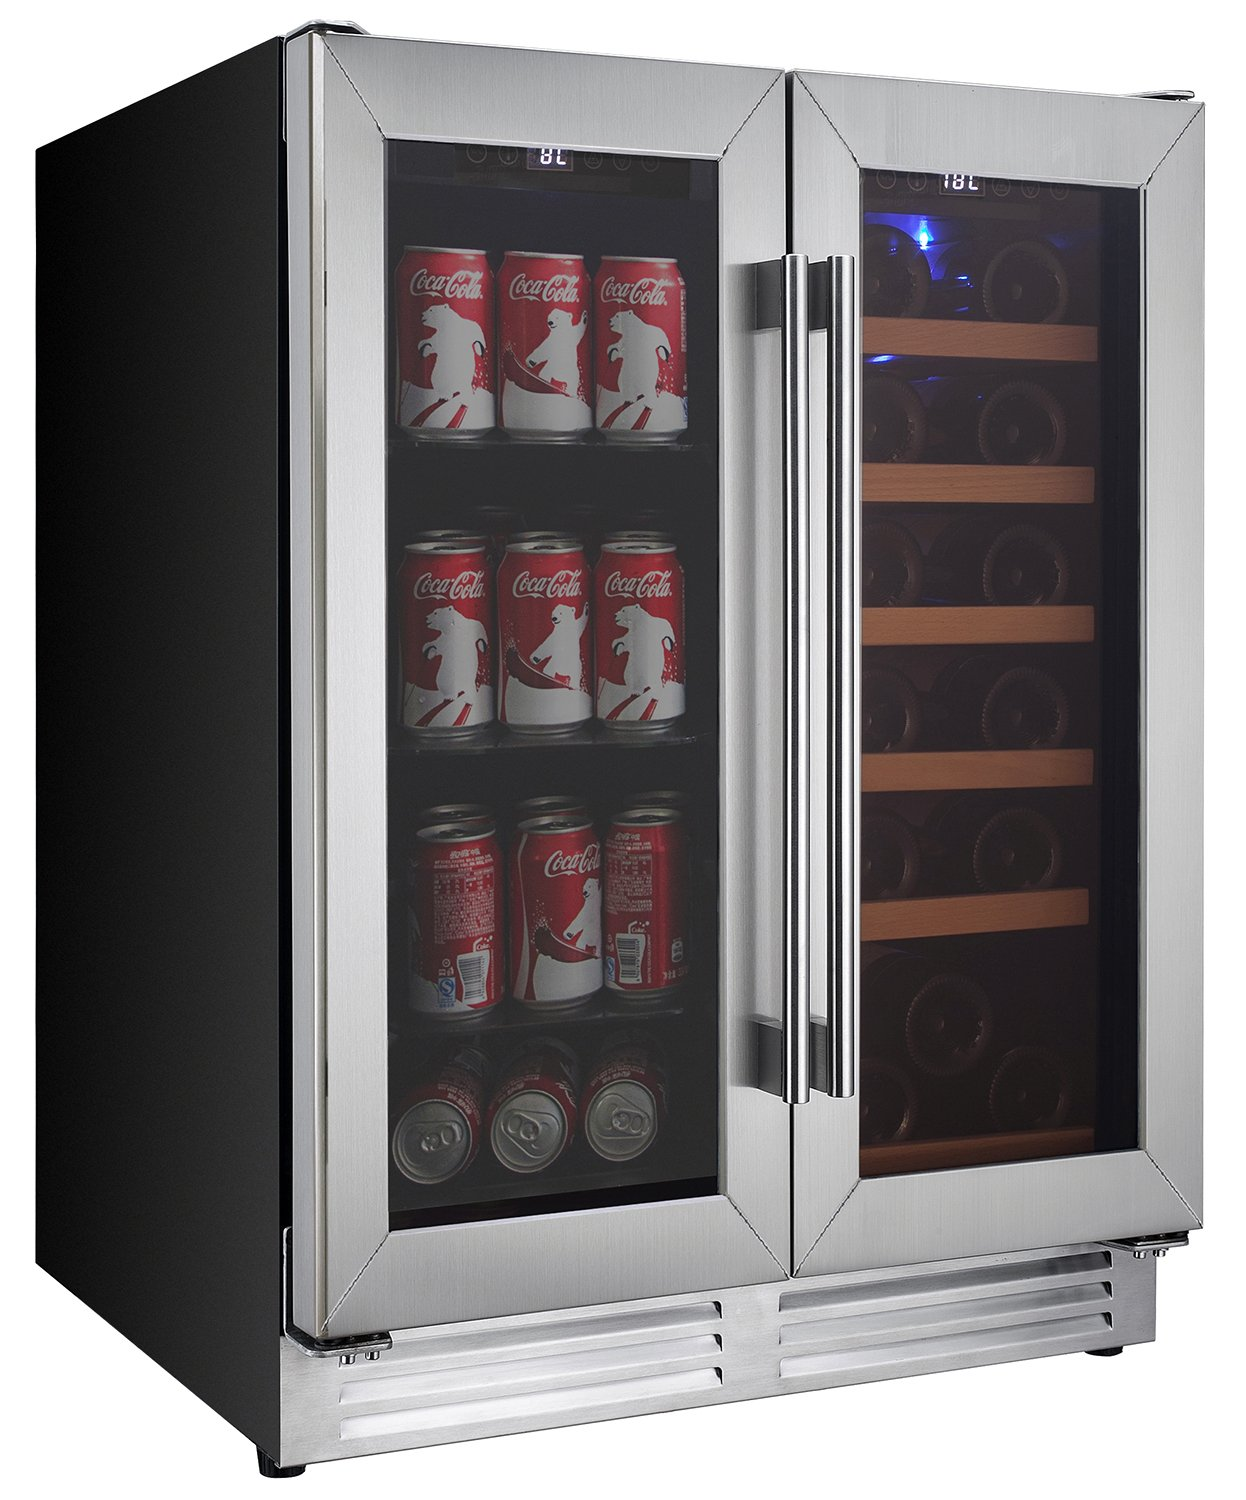 Koolatron KBBC22 DZ Built in Dual Zone Beverage Center Black